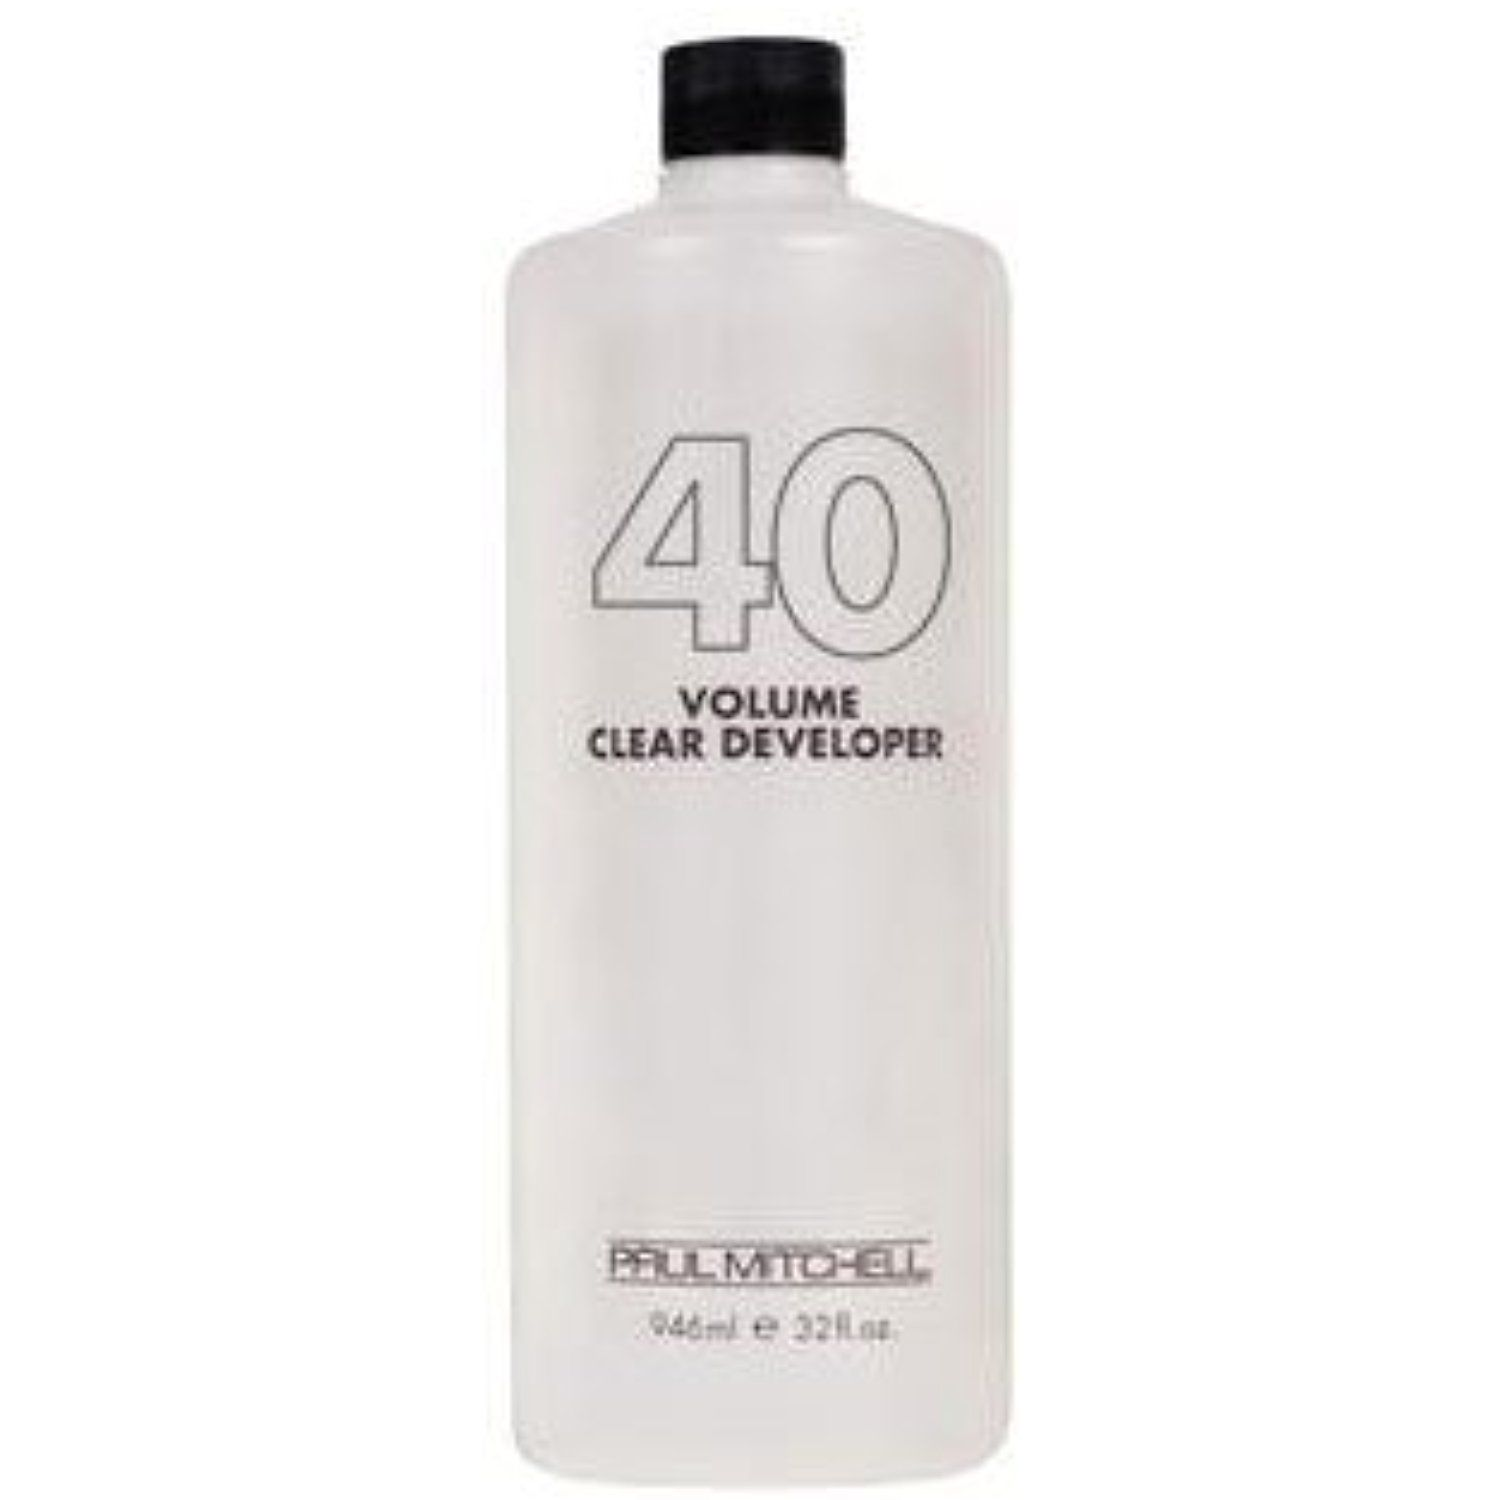 Paul Mitchell Volume Clear Developer 40 32 0 Oz 1 Liter Click Image For More Details This Is An Affiliate Link And I Paul Mitchell Mitchell Development